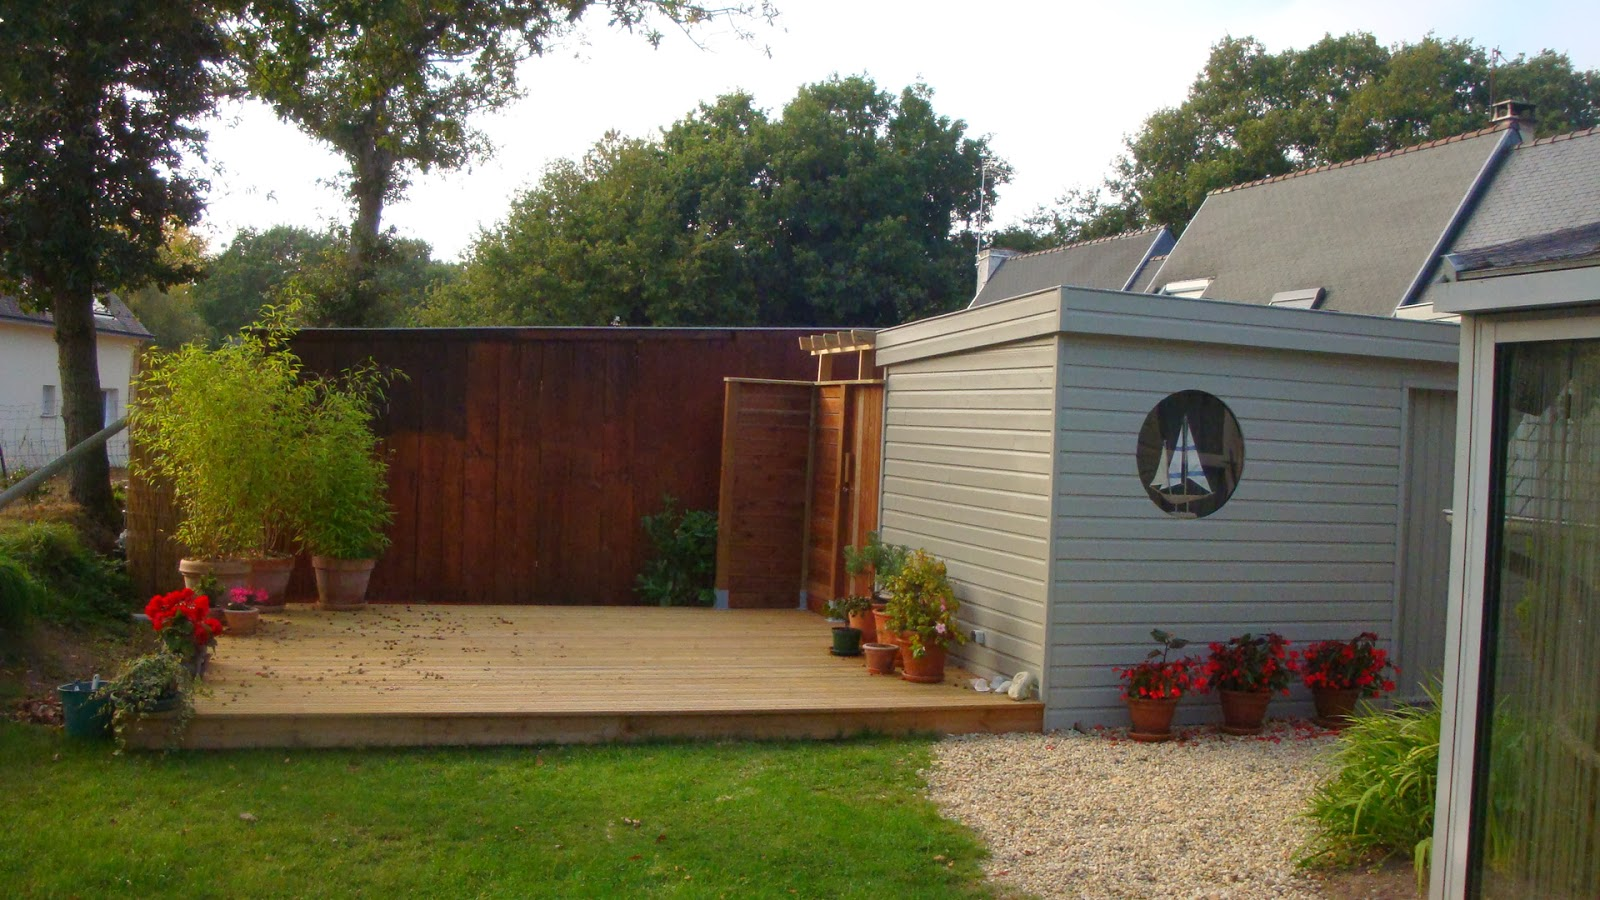 Michel le coz agencement d coration ext rieur car port for Agencement exterieur jardin